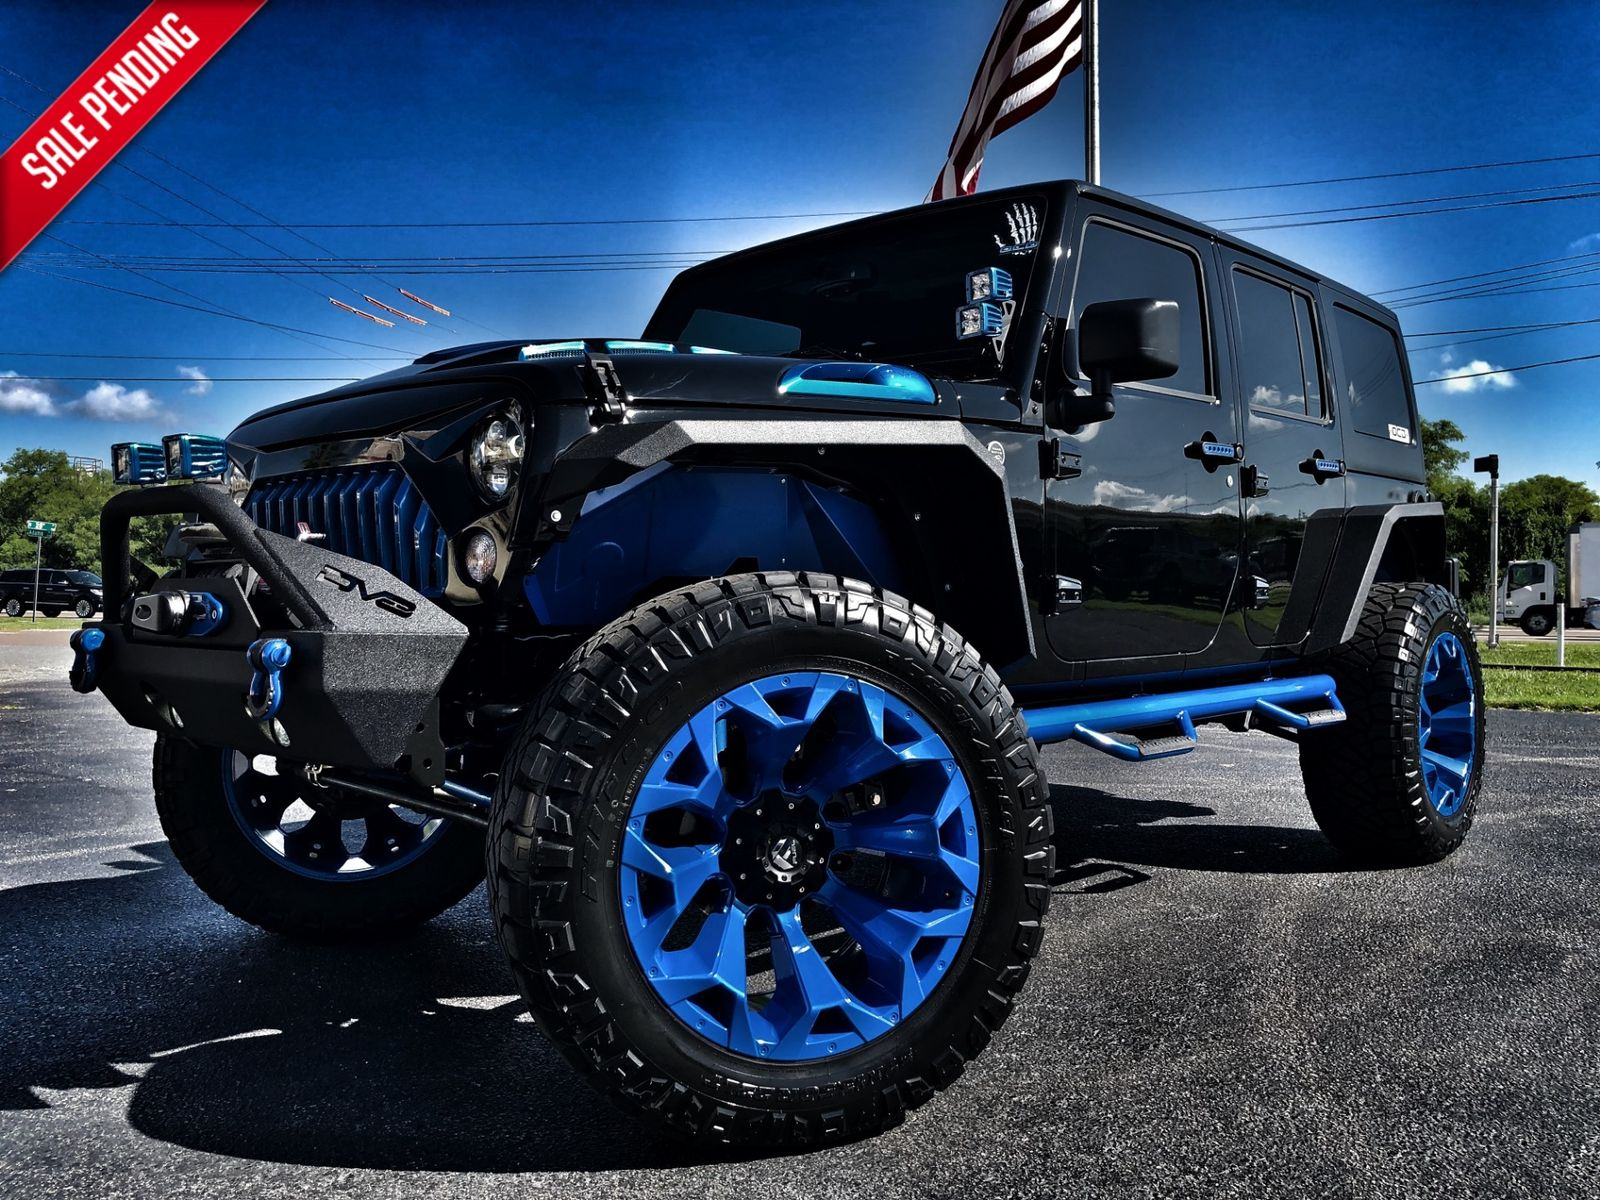 2018 Jeep Wrangler Jk Unlimited Rubicon Custom Lifted Leather Fuel Filter Hardtop 37s Florida Bayshore Automotive In